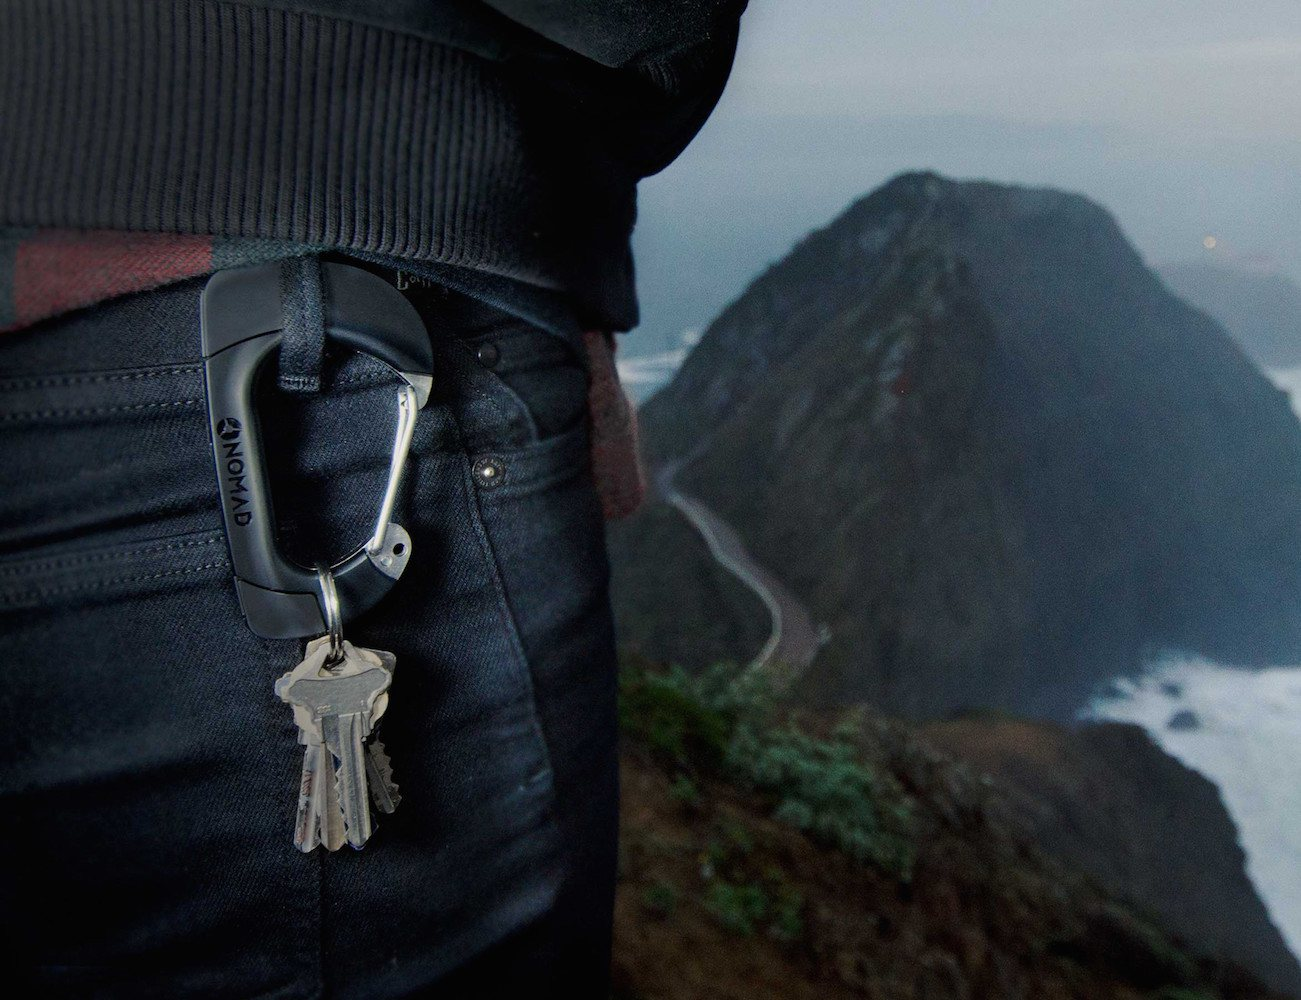 NomadClip – Rugged Carabiner Shaped Charging Cable